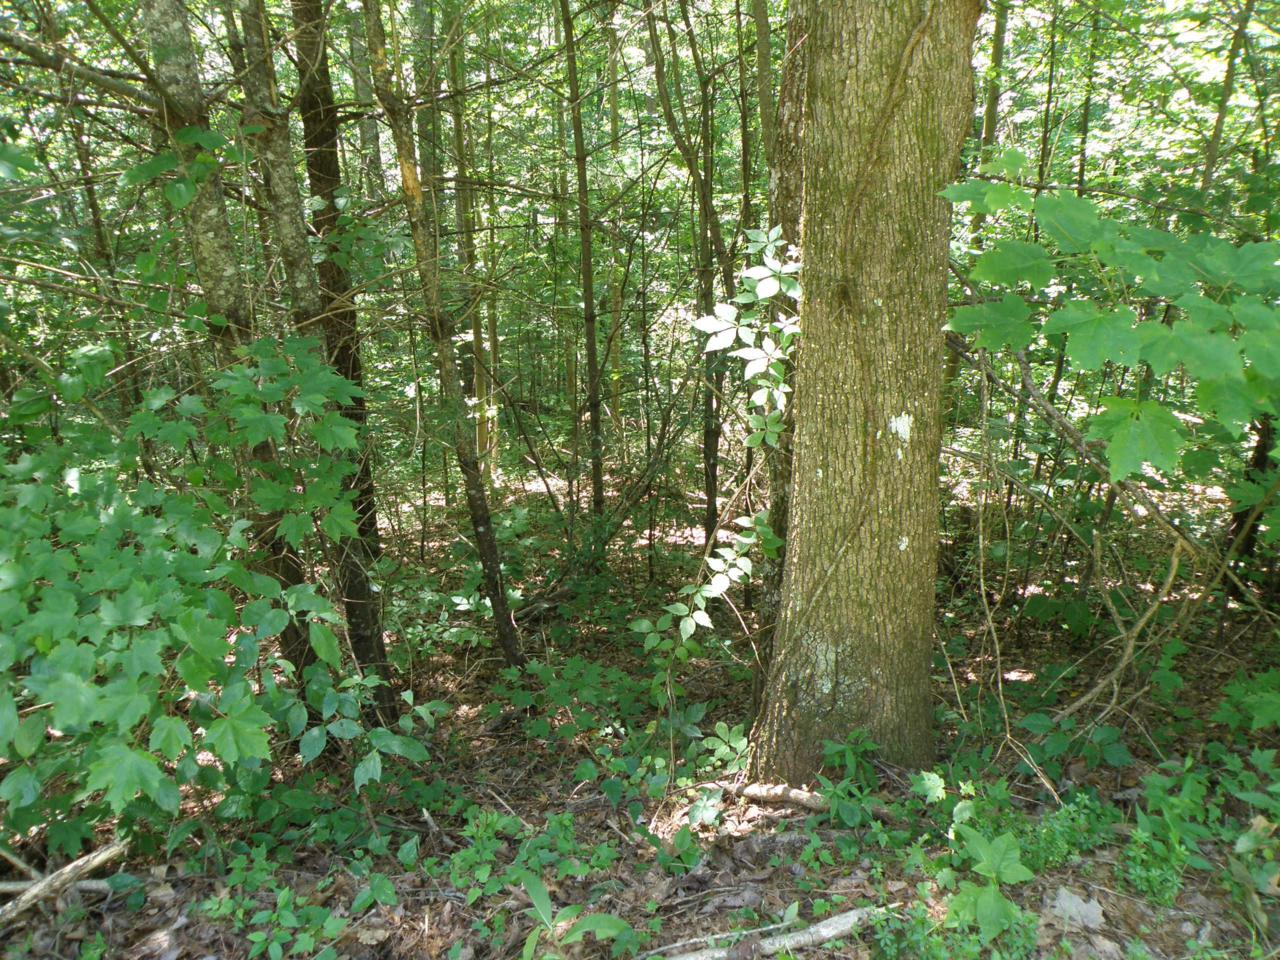 Lot 11-C Mountain Rest Way Way - Photo 1